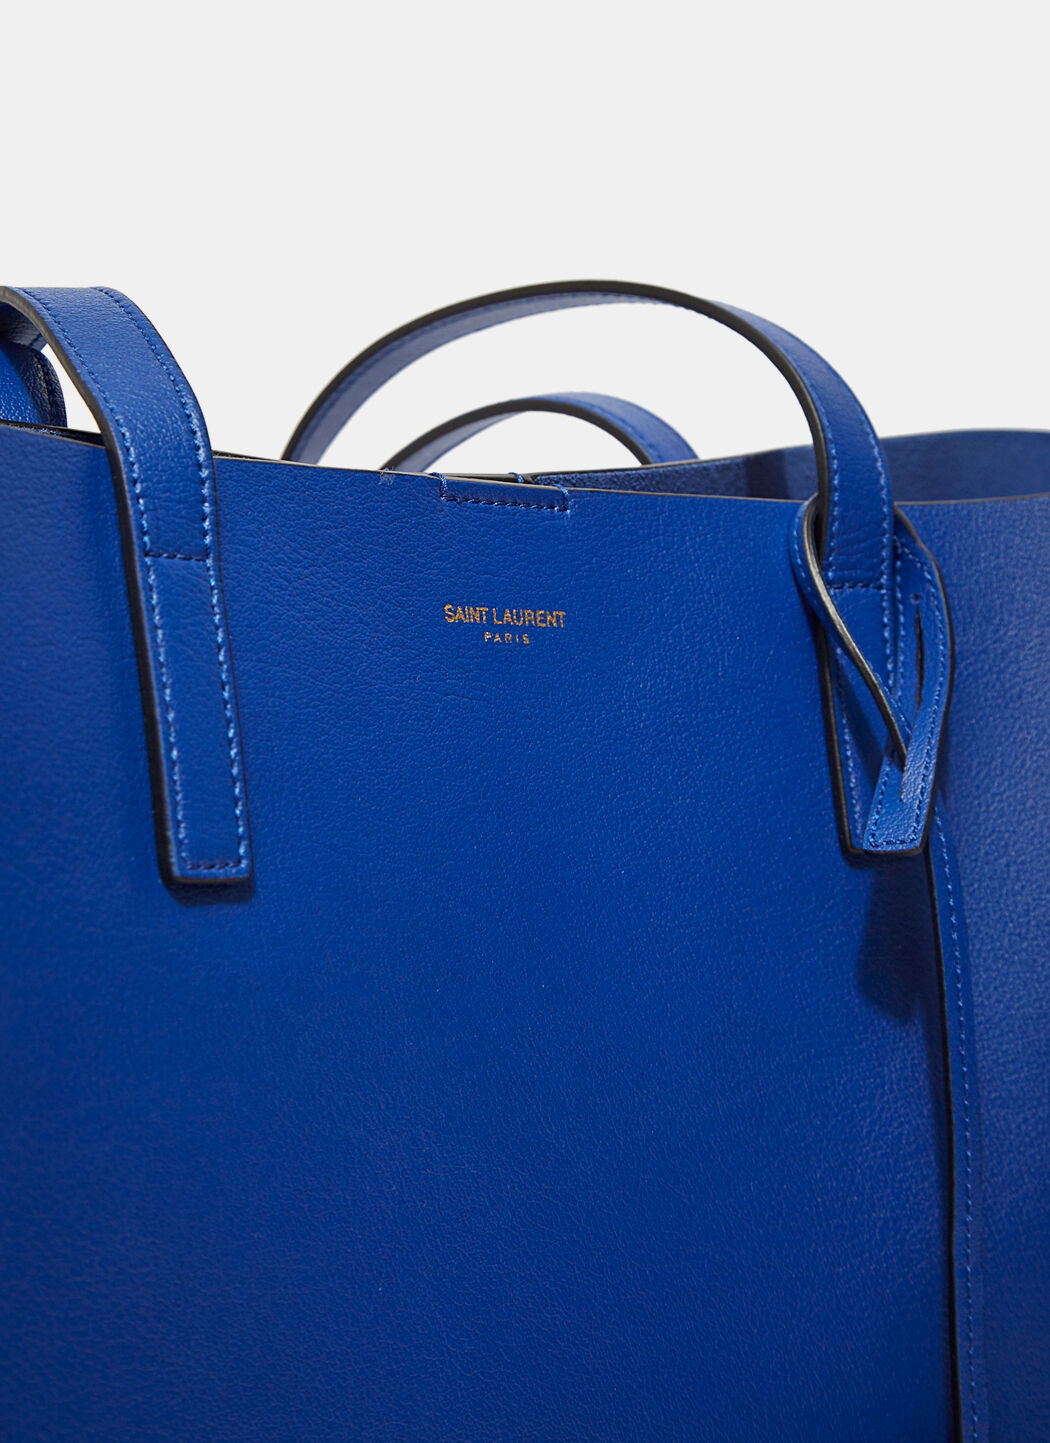 Large Shopping Saint Laurent Tote Bag In Ultramarine And Black Leather